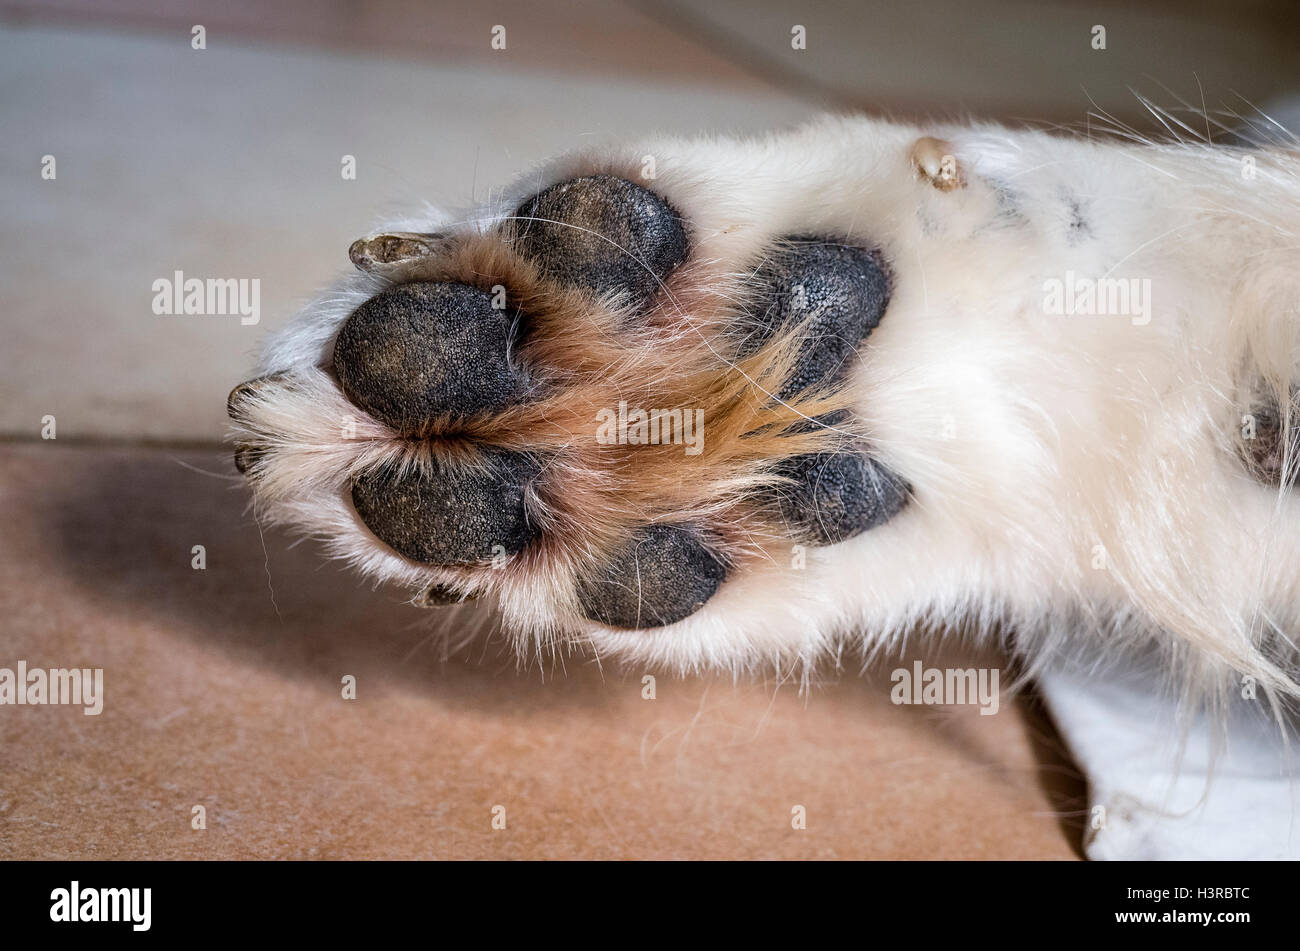 Underneath a dog's front paw showing toes and pads - Stock Image